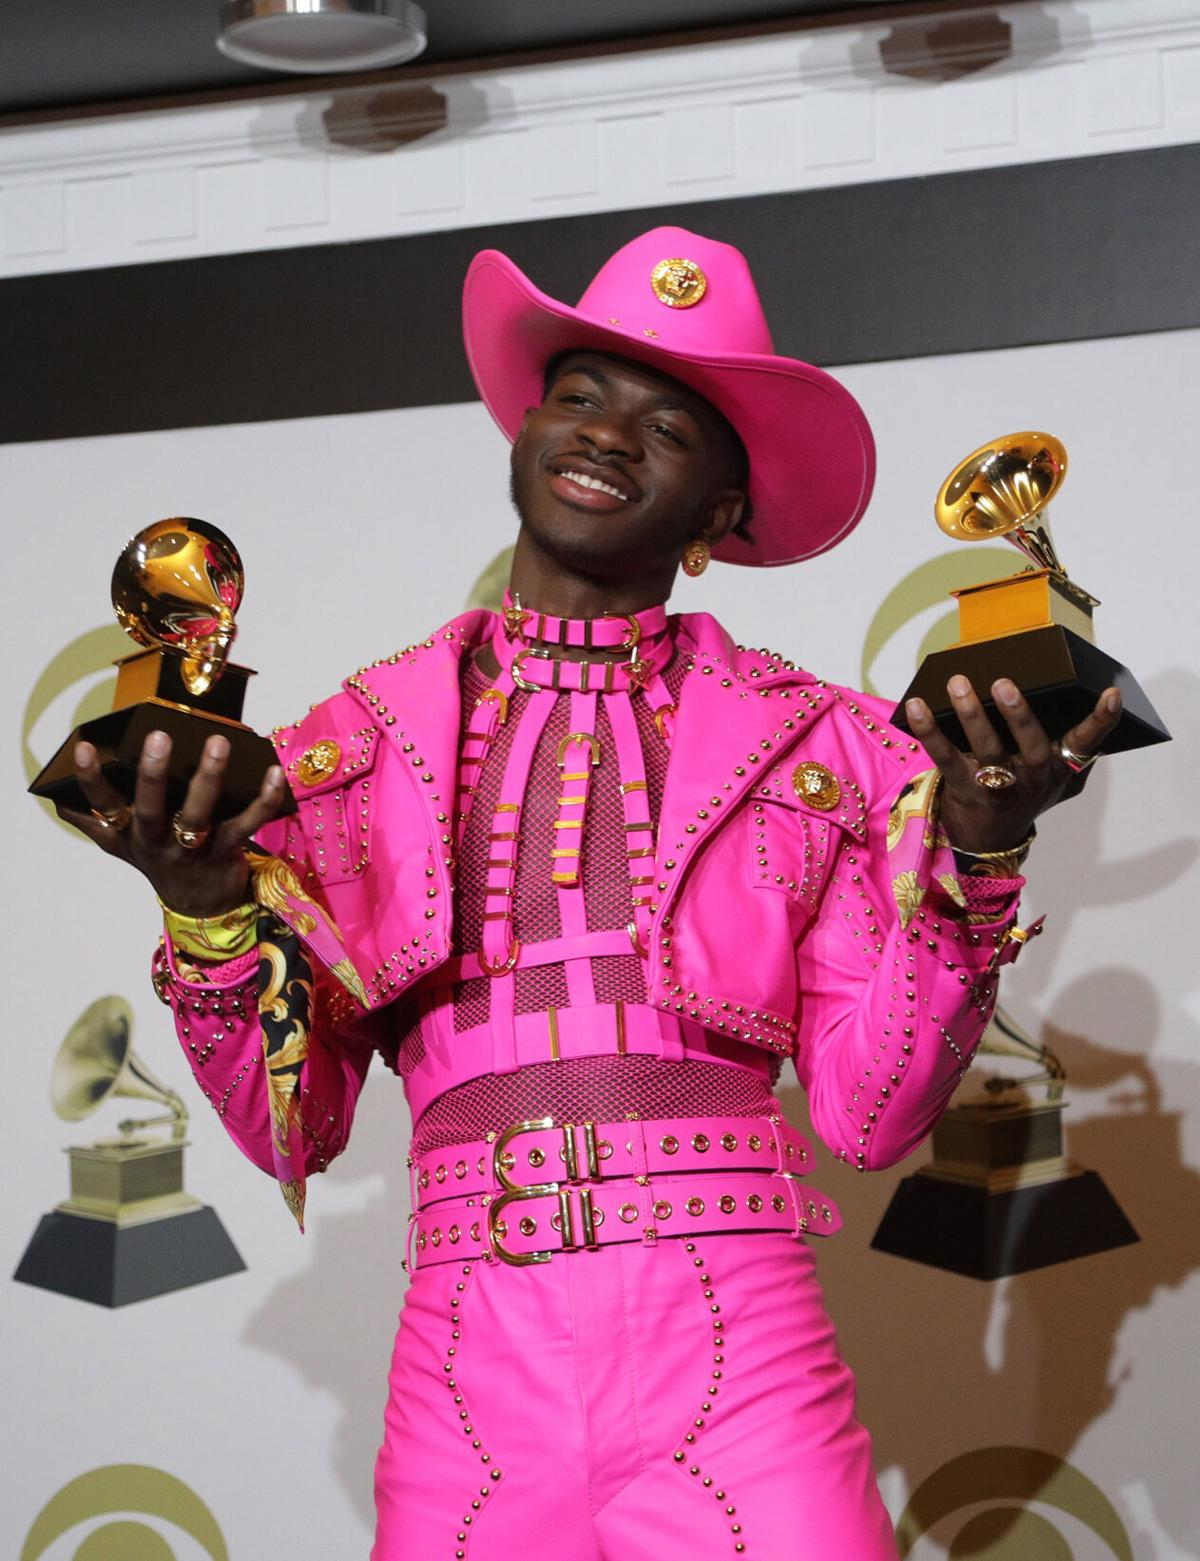 Lil Nas X making most of radical run of queer music